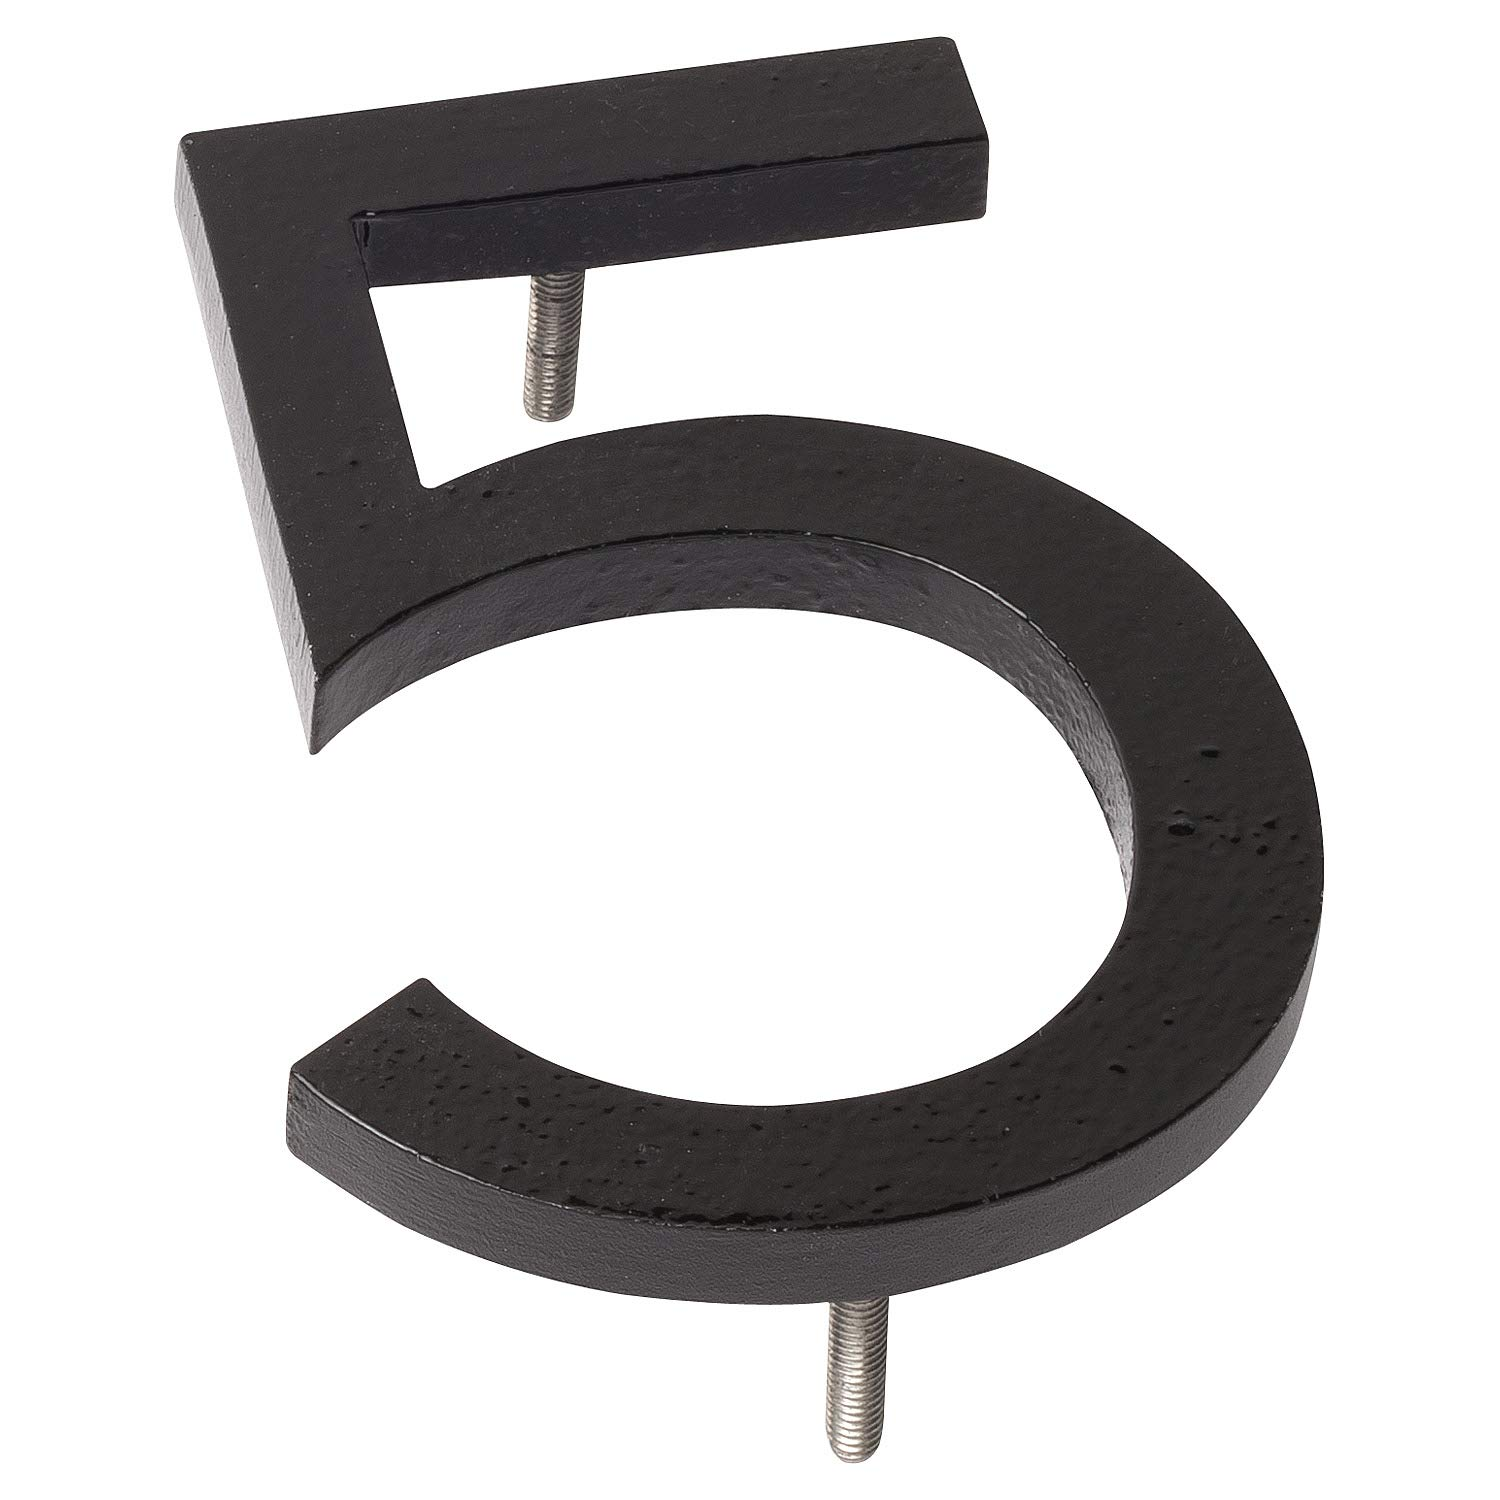 Montague Metal Products MHN-12-5-F-BK1 Floating House Number, 12' x 8.88' x 0.375' Black